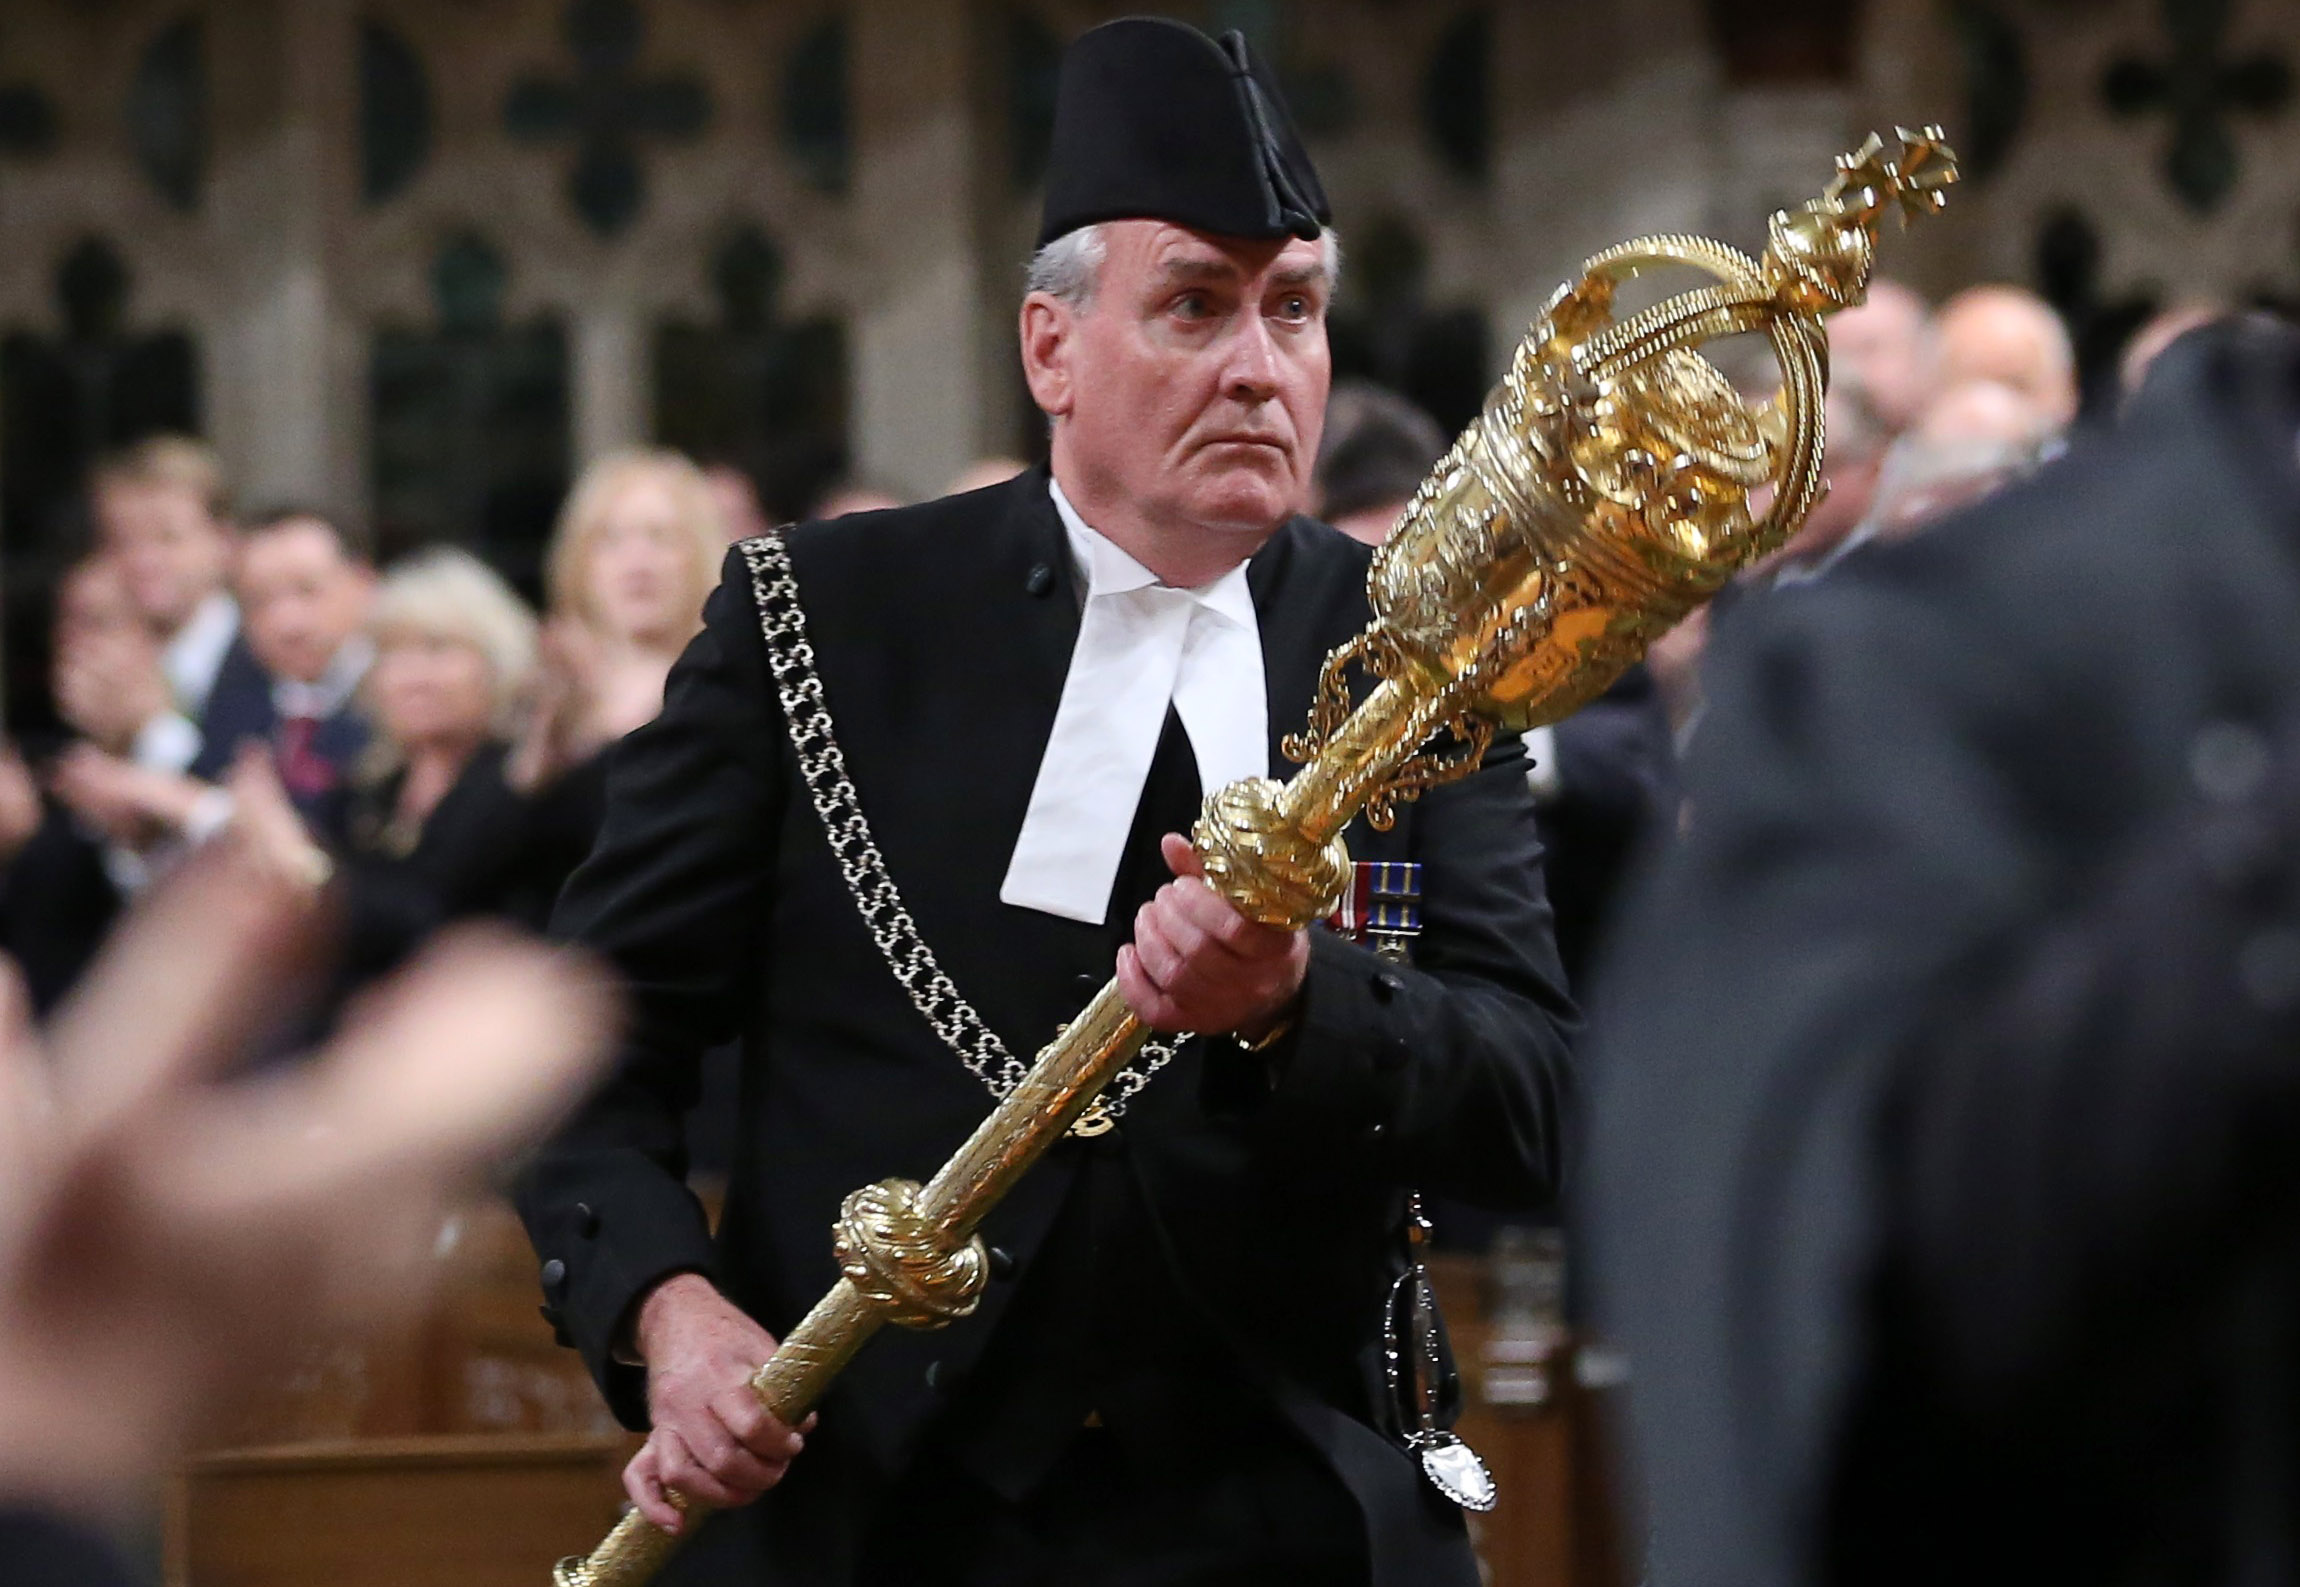 Sergeant-at-Arms Kevin Vickers is applauded in the House of Commons in Ottawa October 23, 2014.